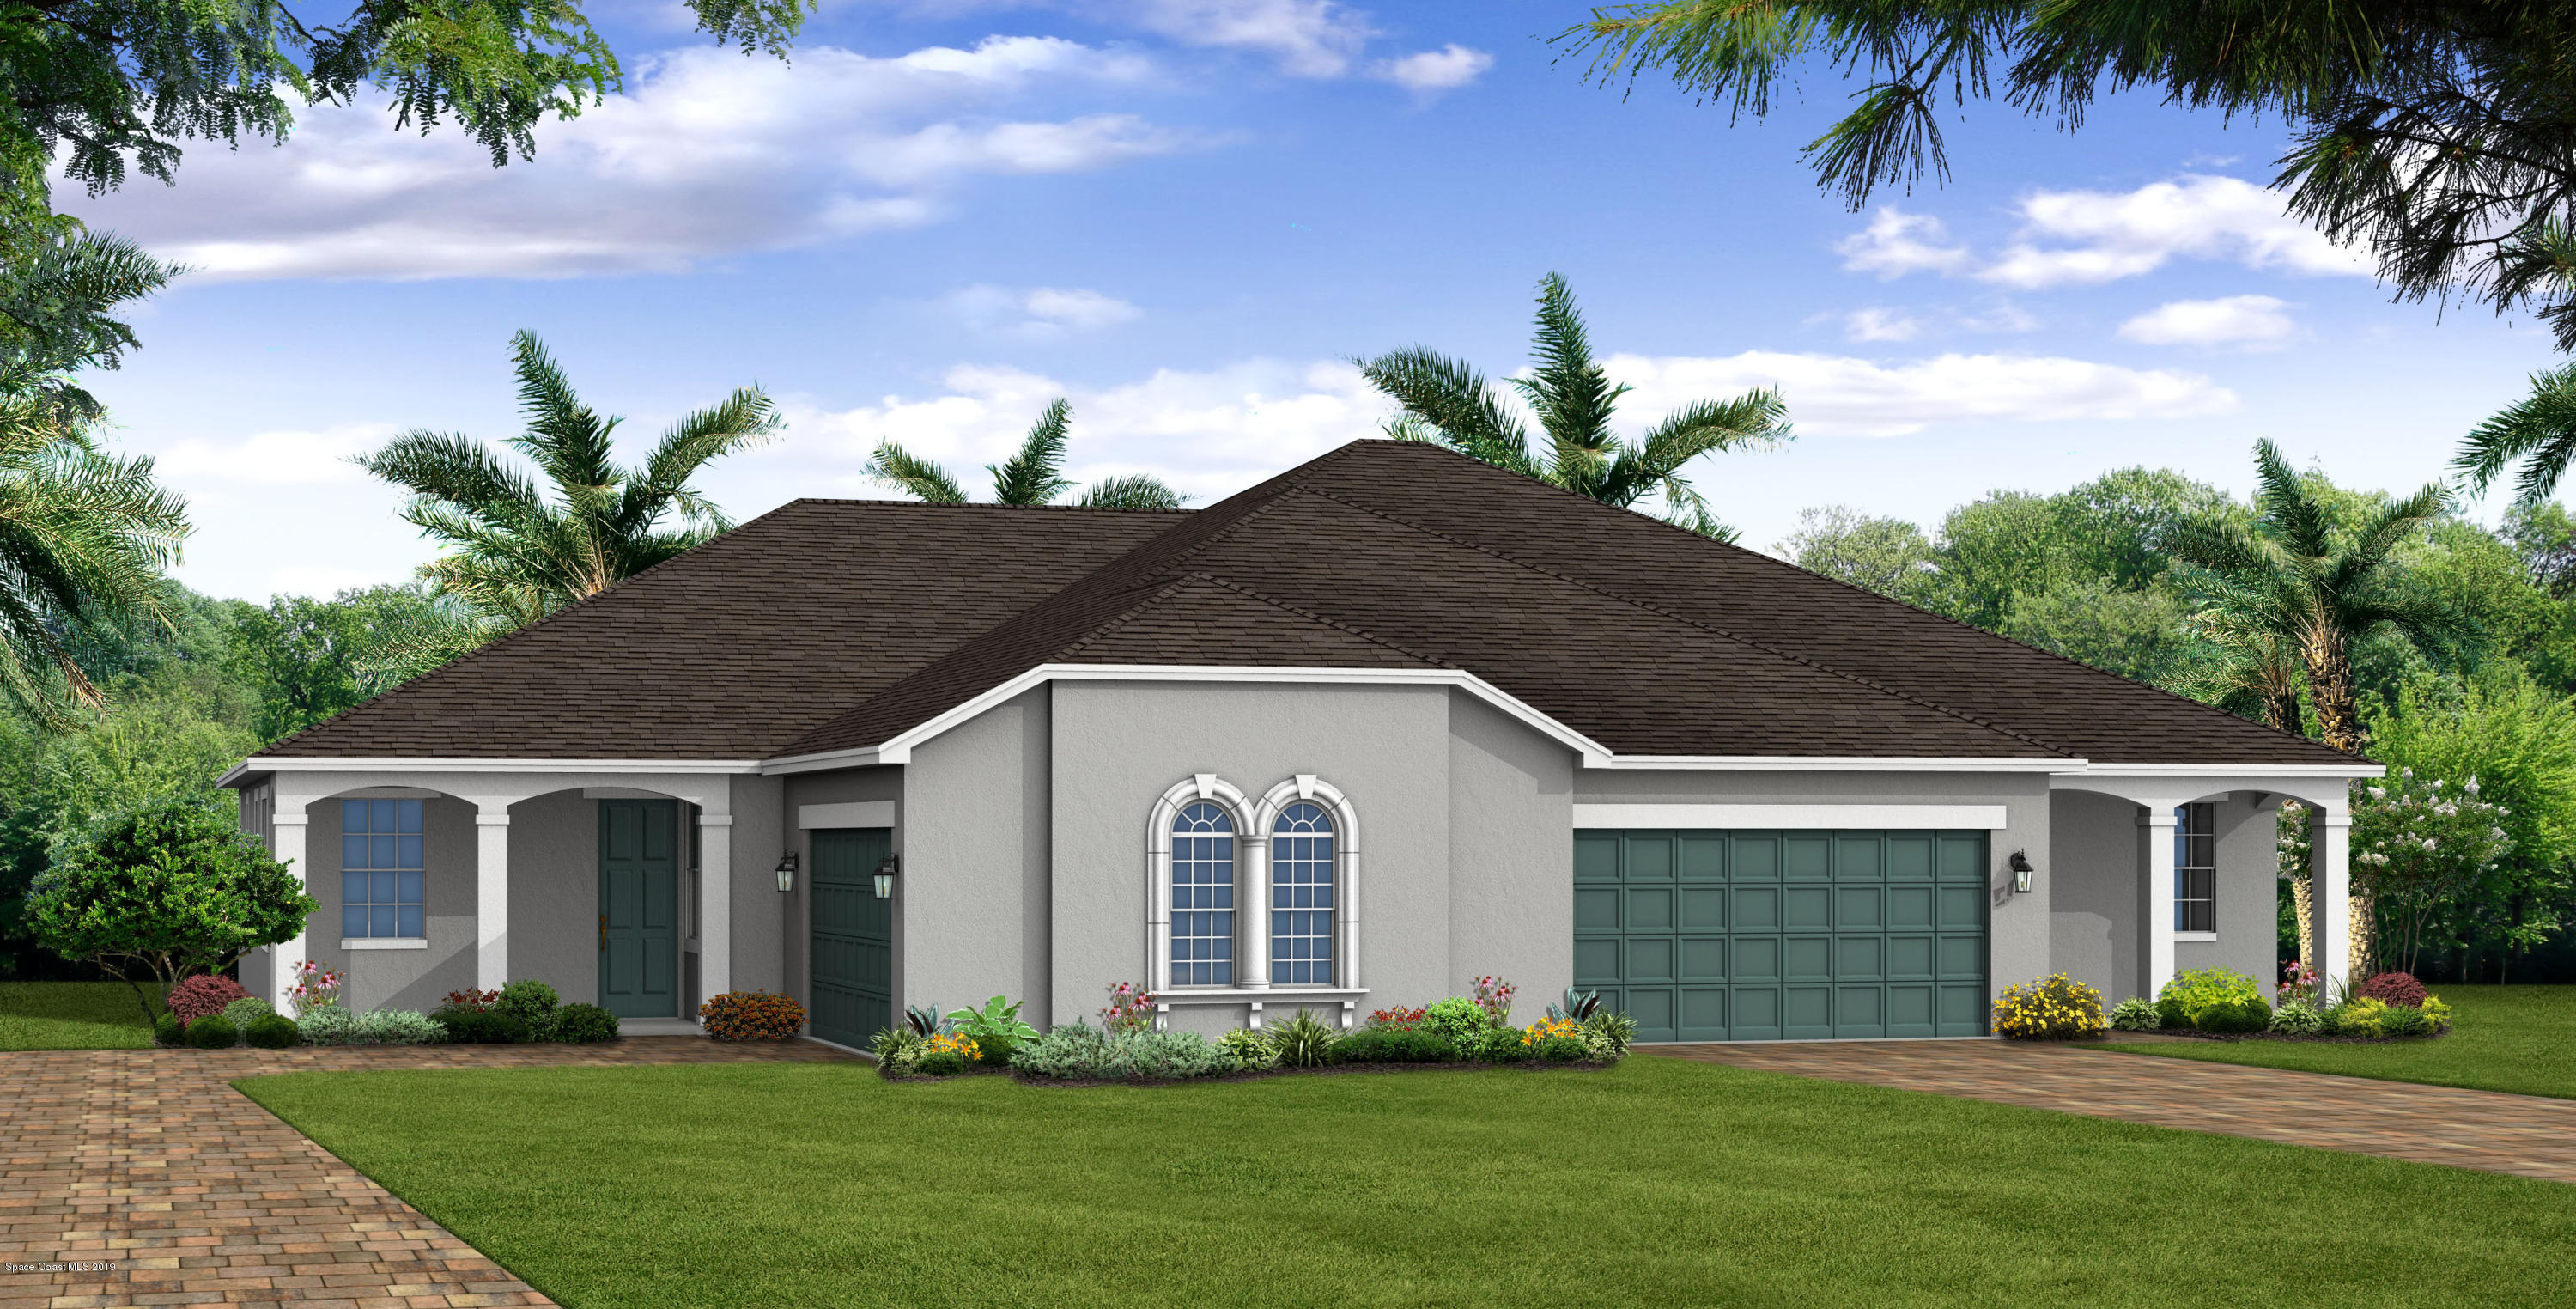 Single Family Home for Sale at 7855 Wyndham 7855 Wyndham Melbourne, Florida 32940 United States